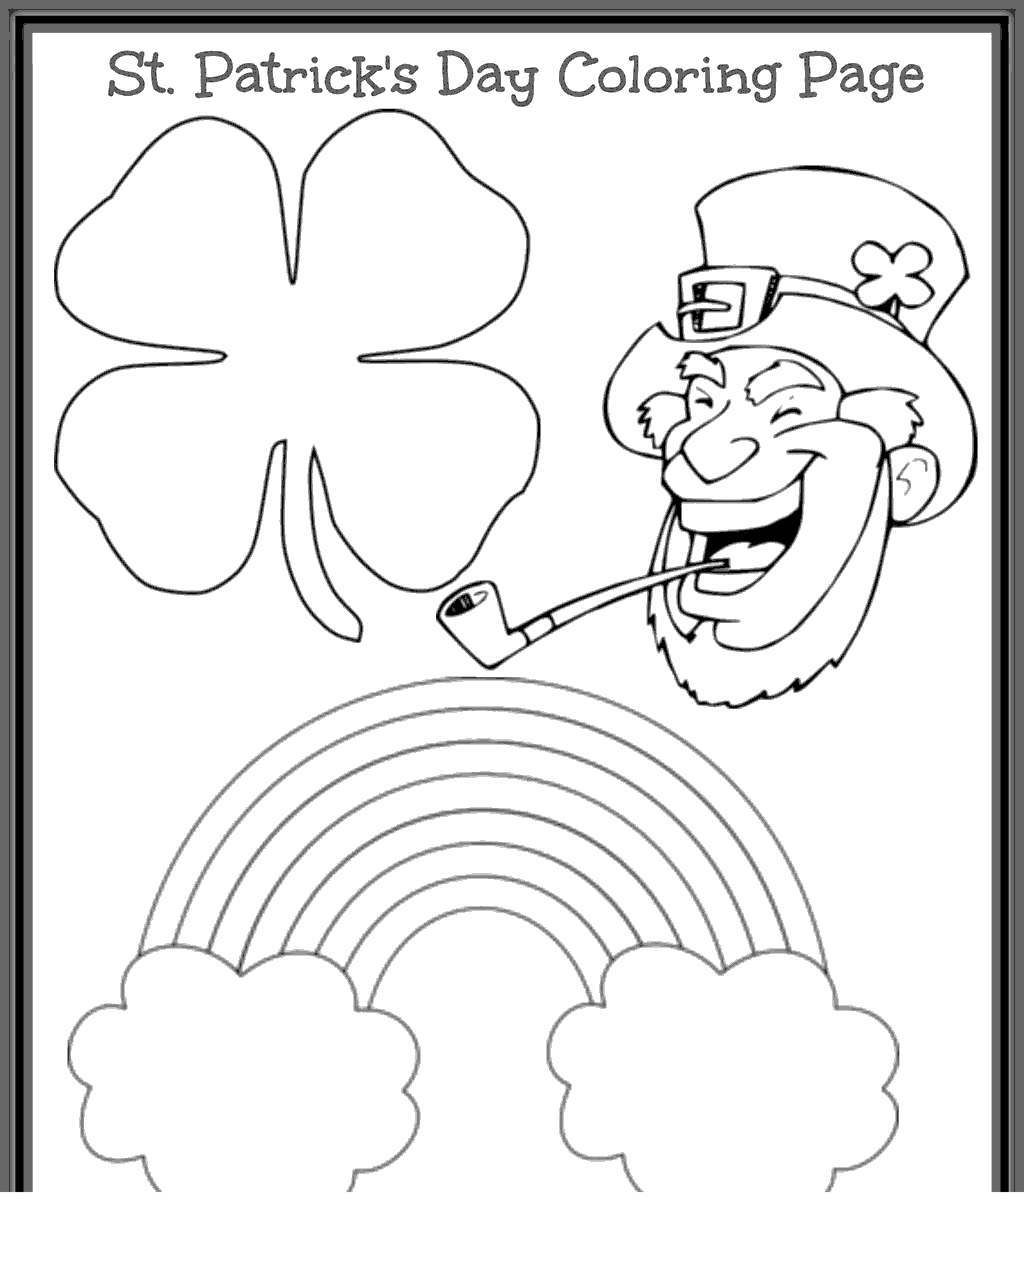 All Saints Day Coloring Pages Getings Lineart - Free ...